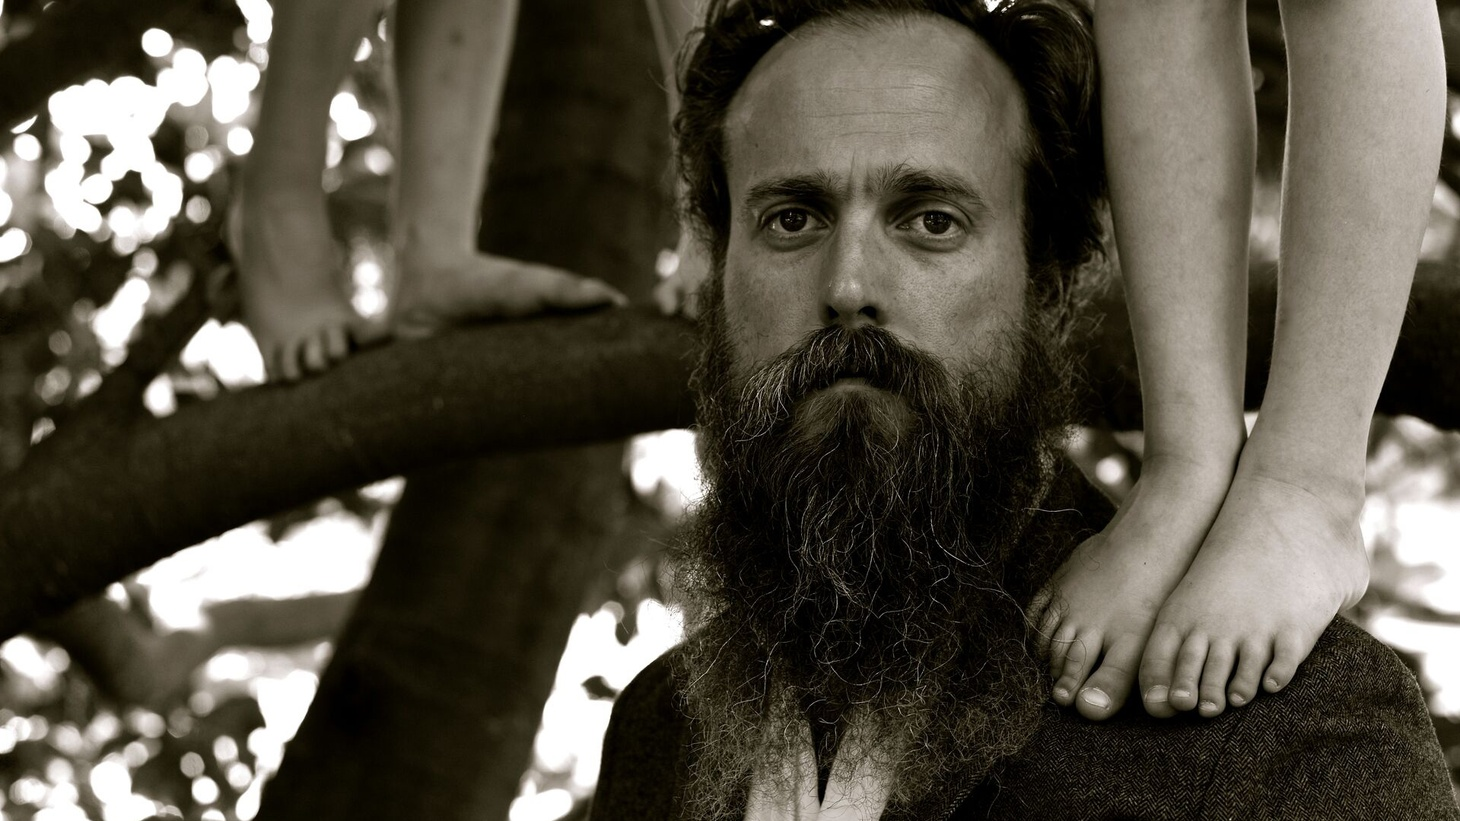 Late August promises a full-length album by Iron & Wine as well as a chance to experience his songs live when his band plays a ton of shows across the US.